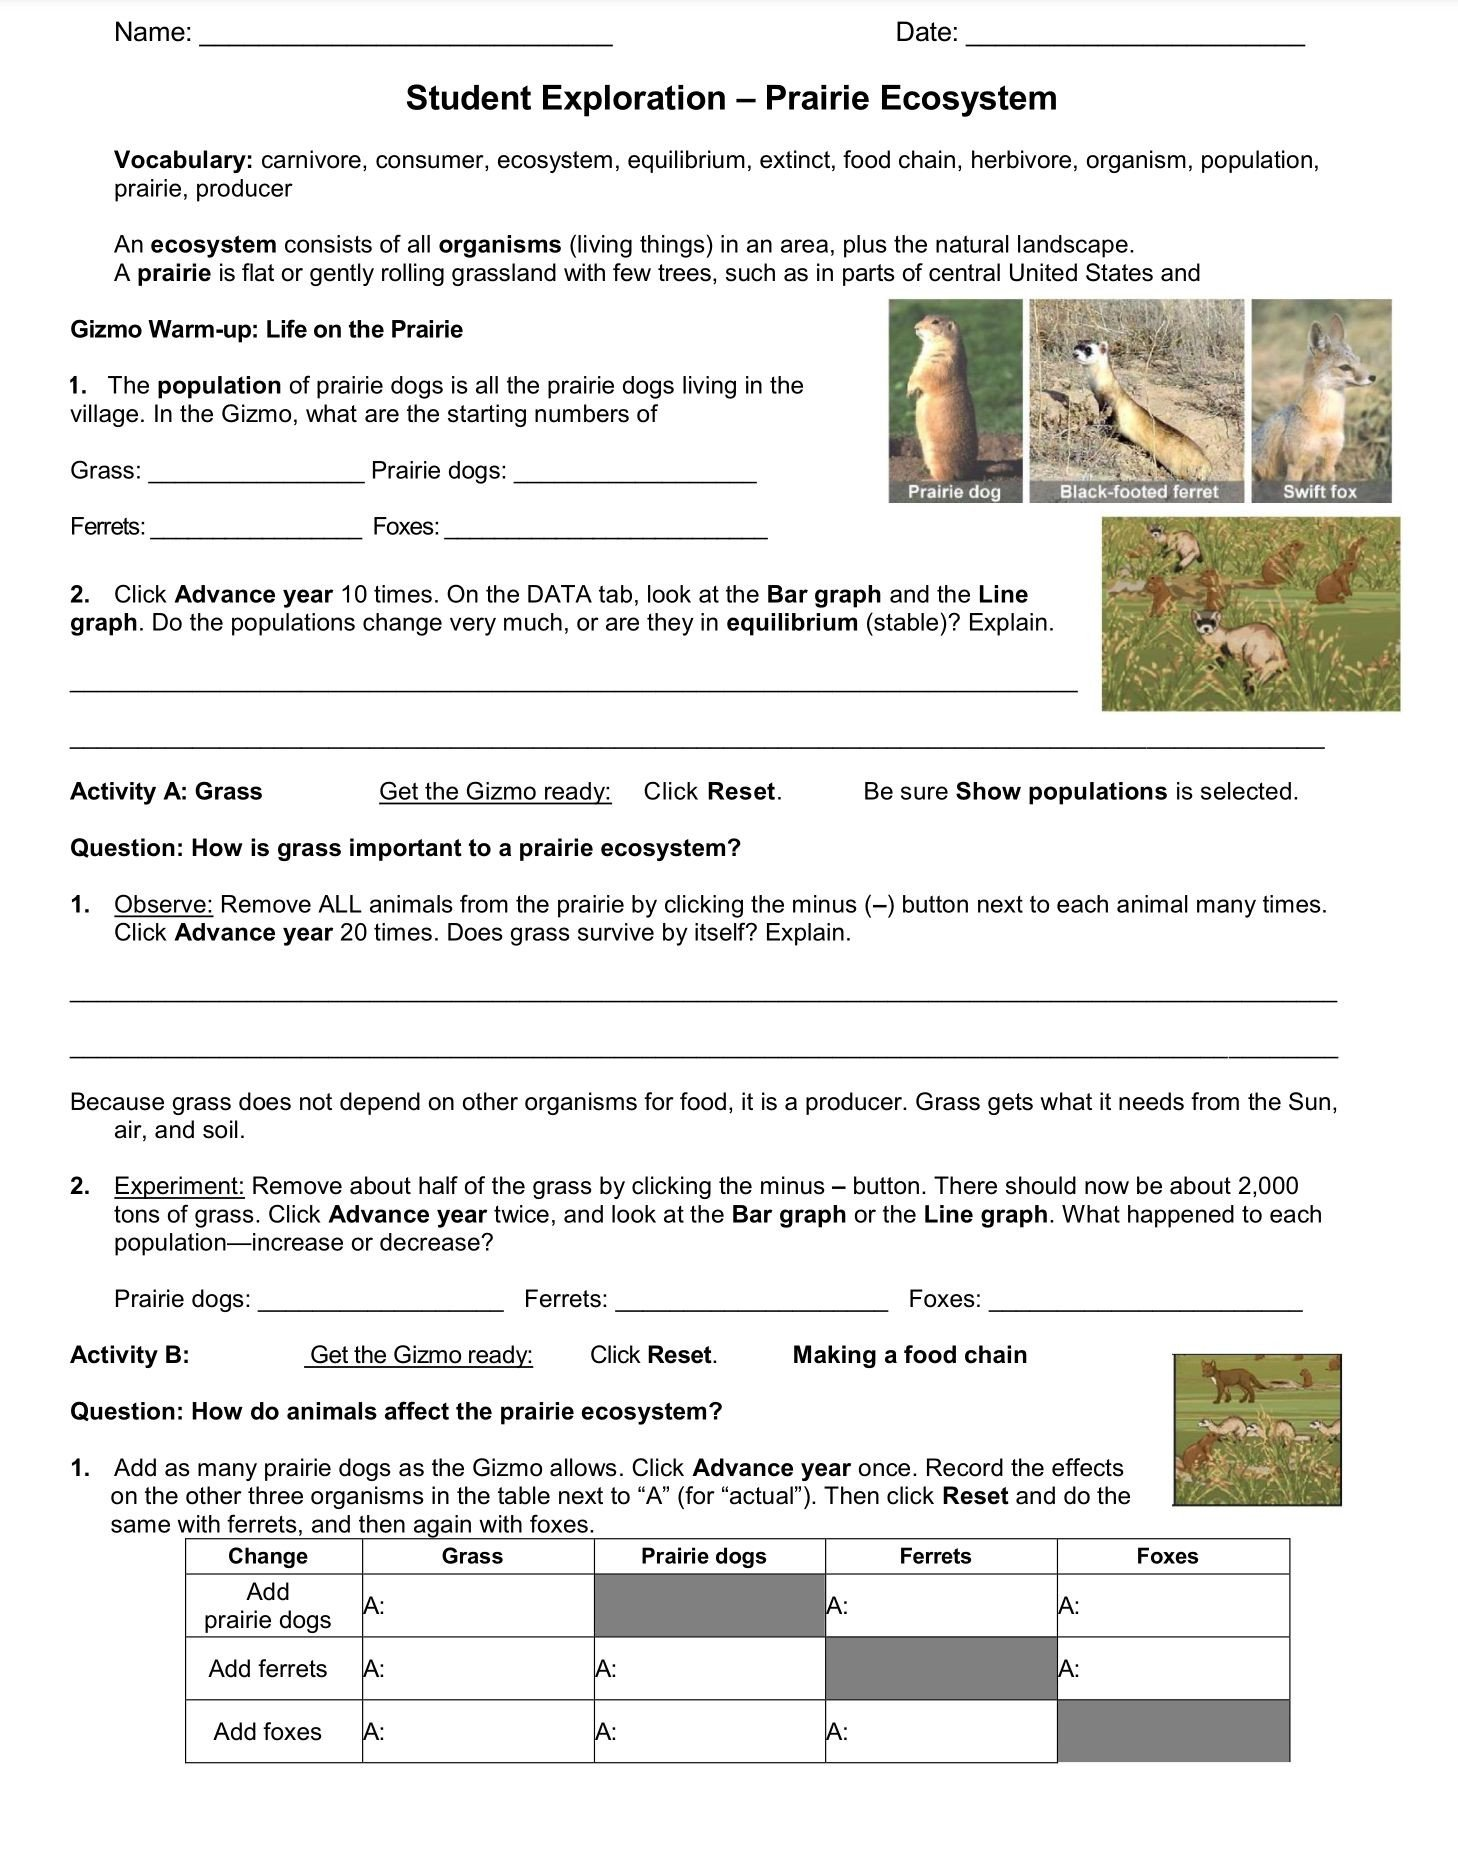 Ecosystem Worksheets 4th Grade Ecosystem Student Exploration Worksheet Go to Explore